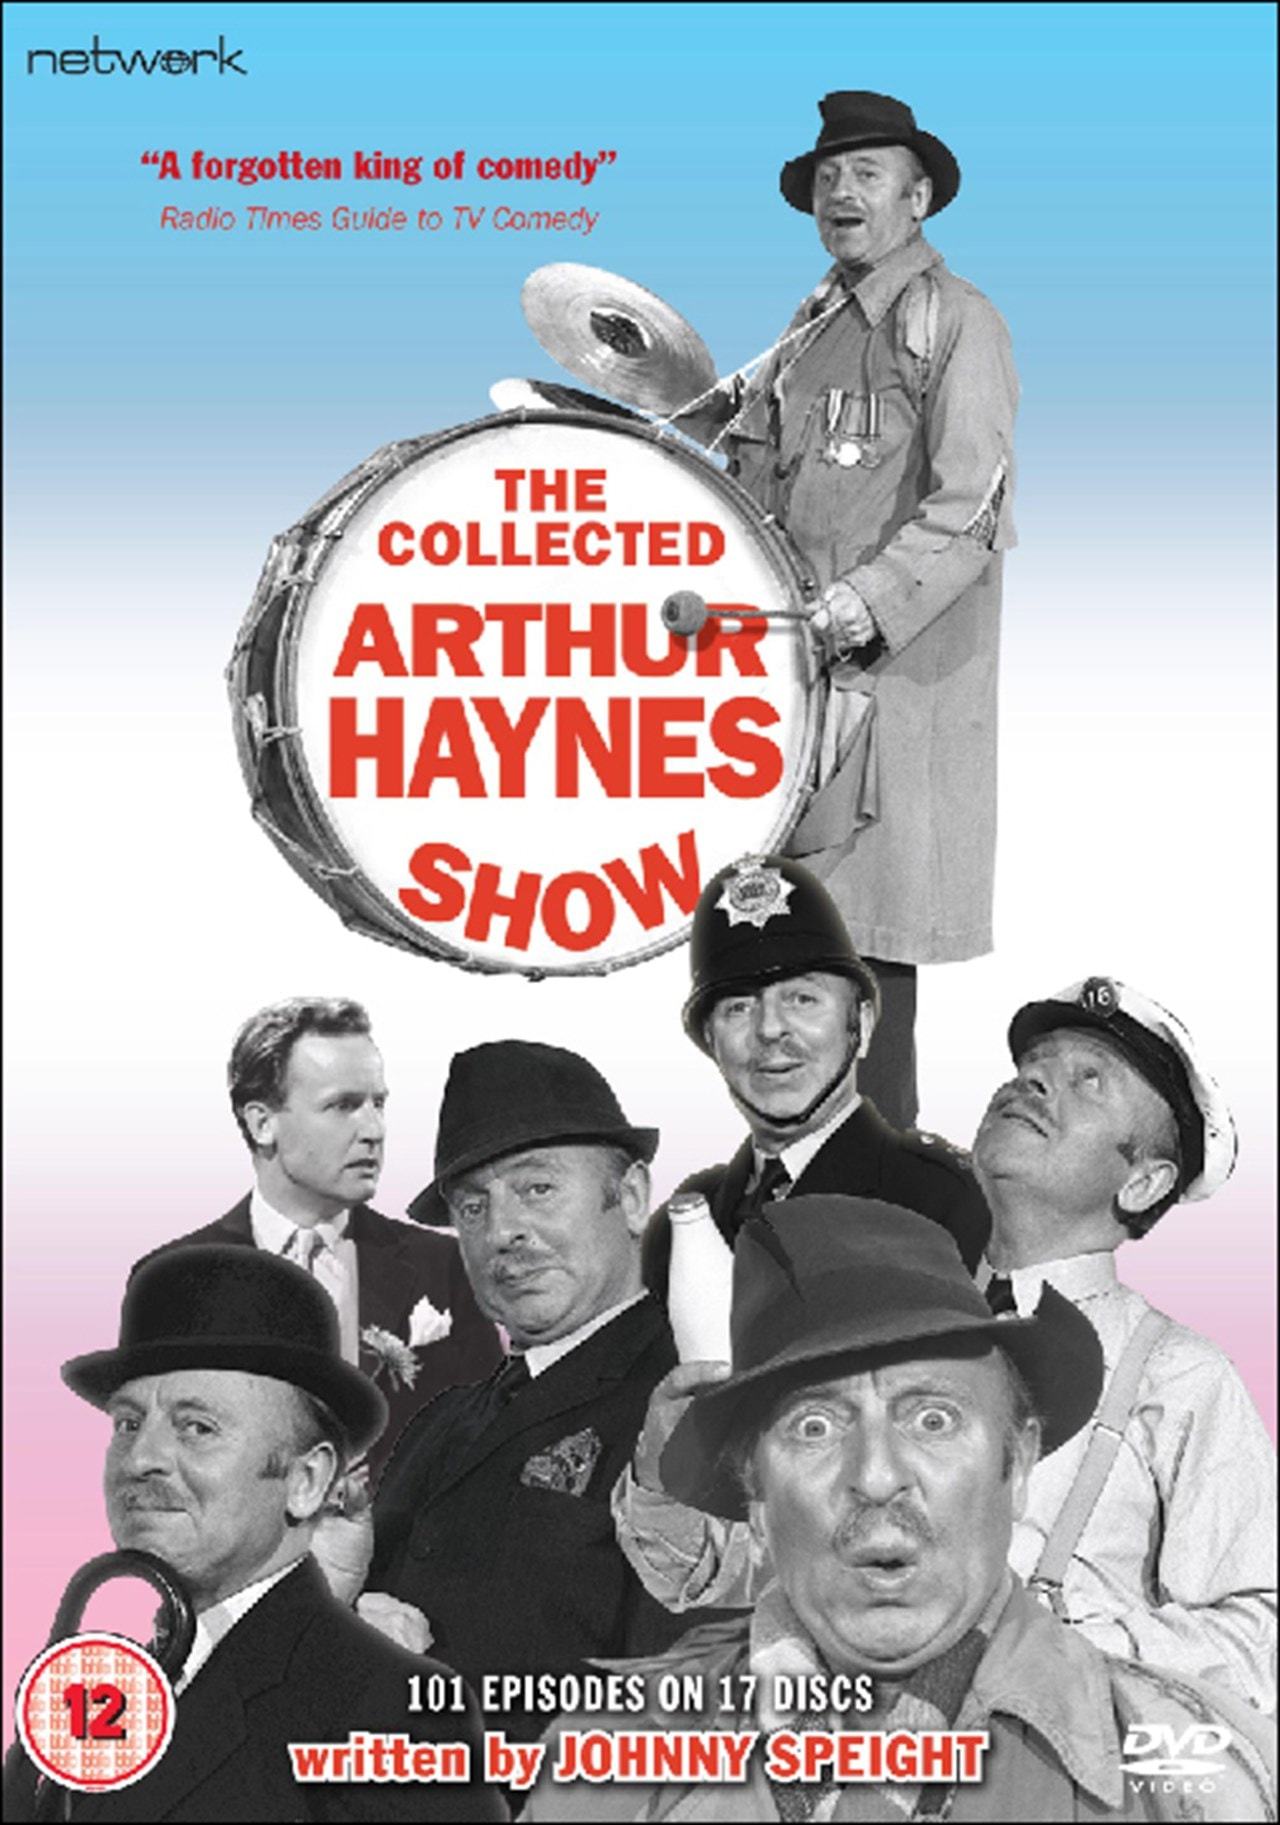 The Collected Arthur Haynes Show - 1